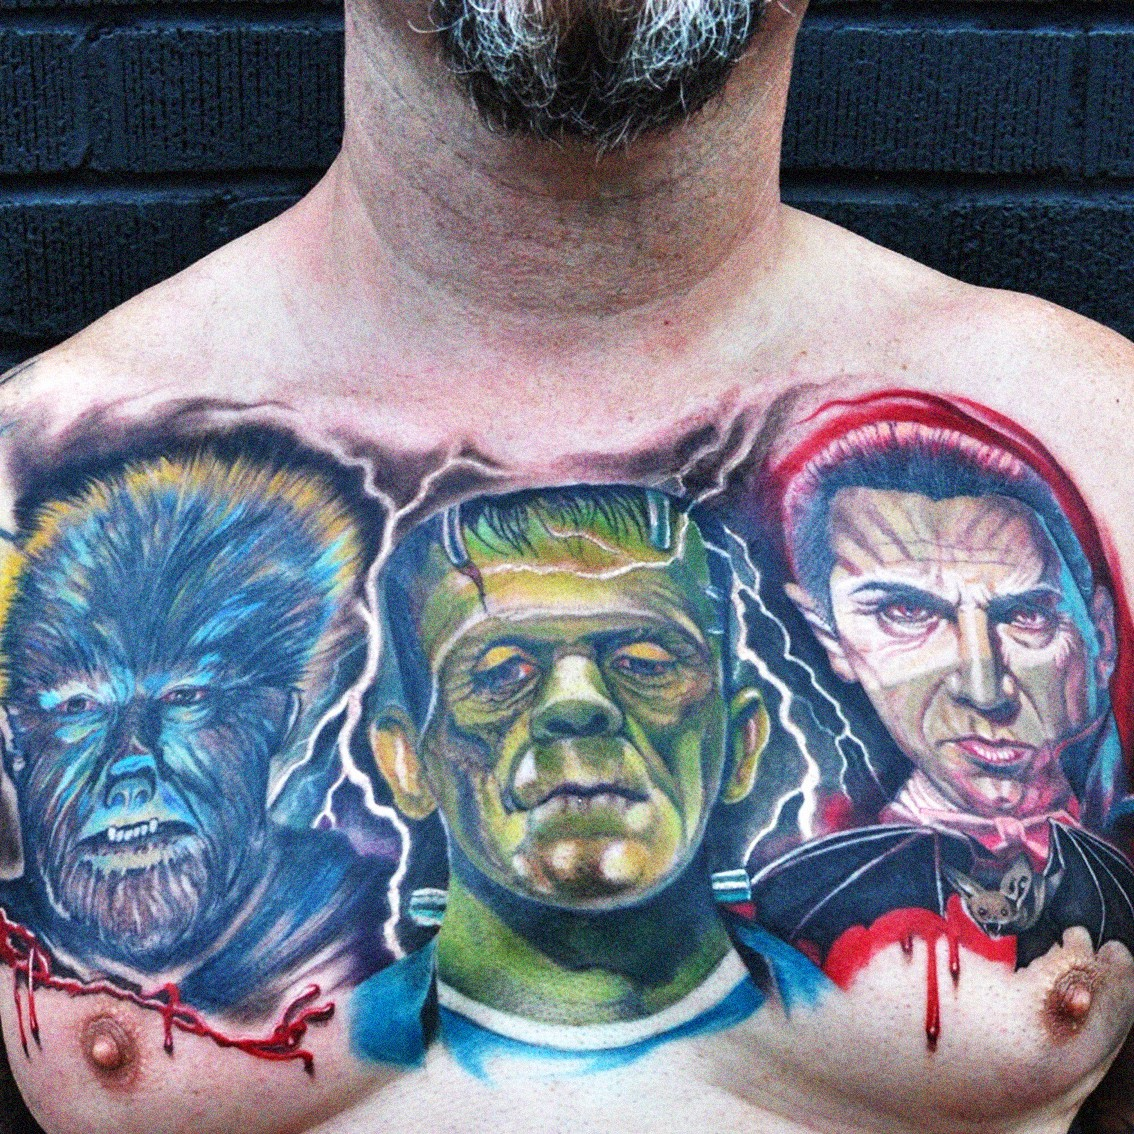 We Asked Tattoo Artists About the Weirdest Pop Culture Ink They've Done. ""